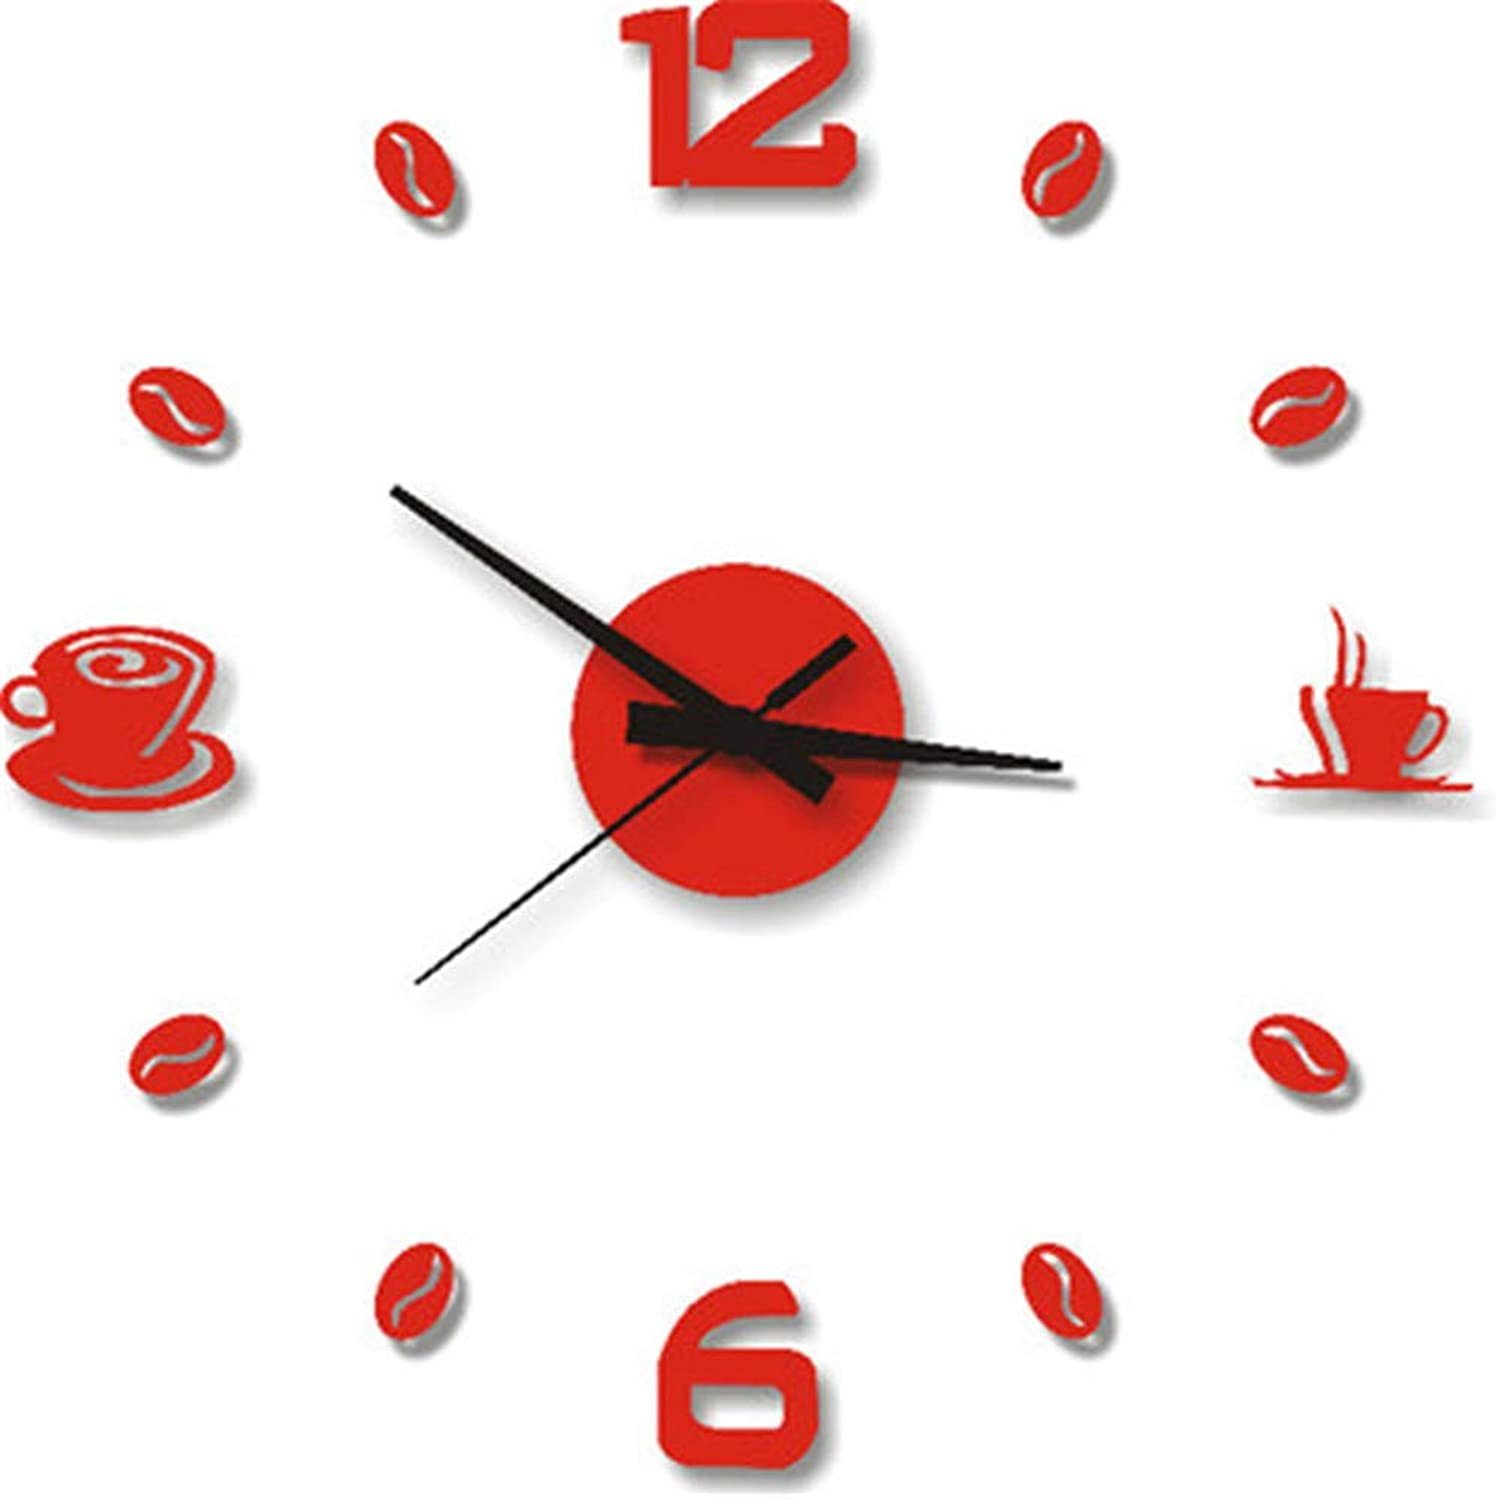 Wall Clock Living Room Hall Decoration Wall Clock Digital Wall Stickers Home School Movement Display Paste, Red